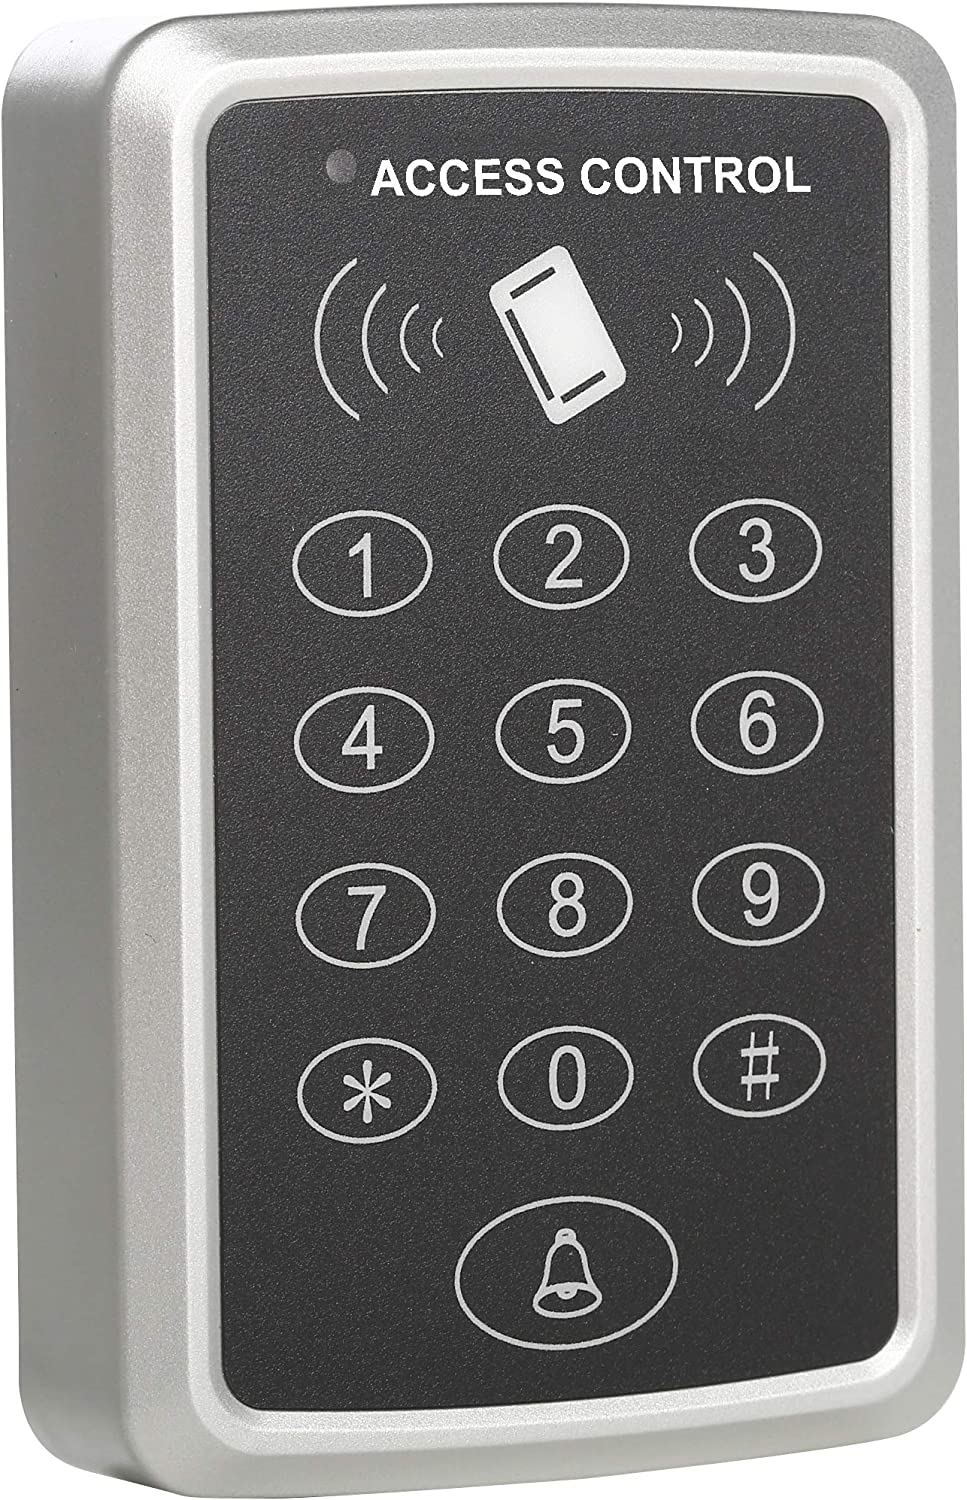 2.4ghz Wifi Door Access Control Kit With 280kg Force Electric Magnetic Lock Smartphone Controlled Home Improvement